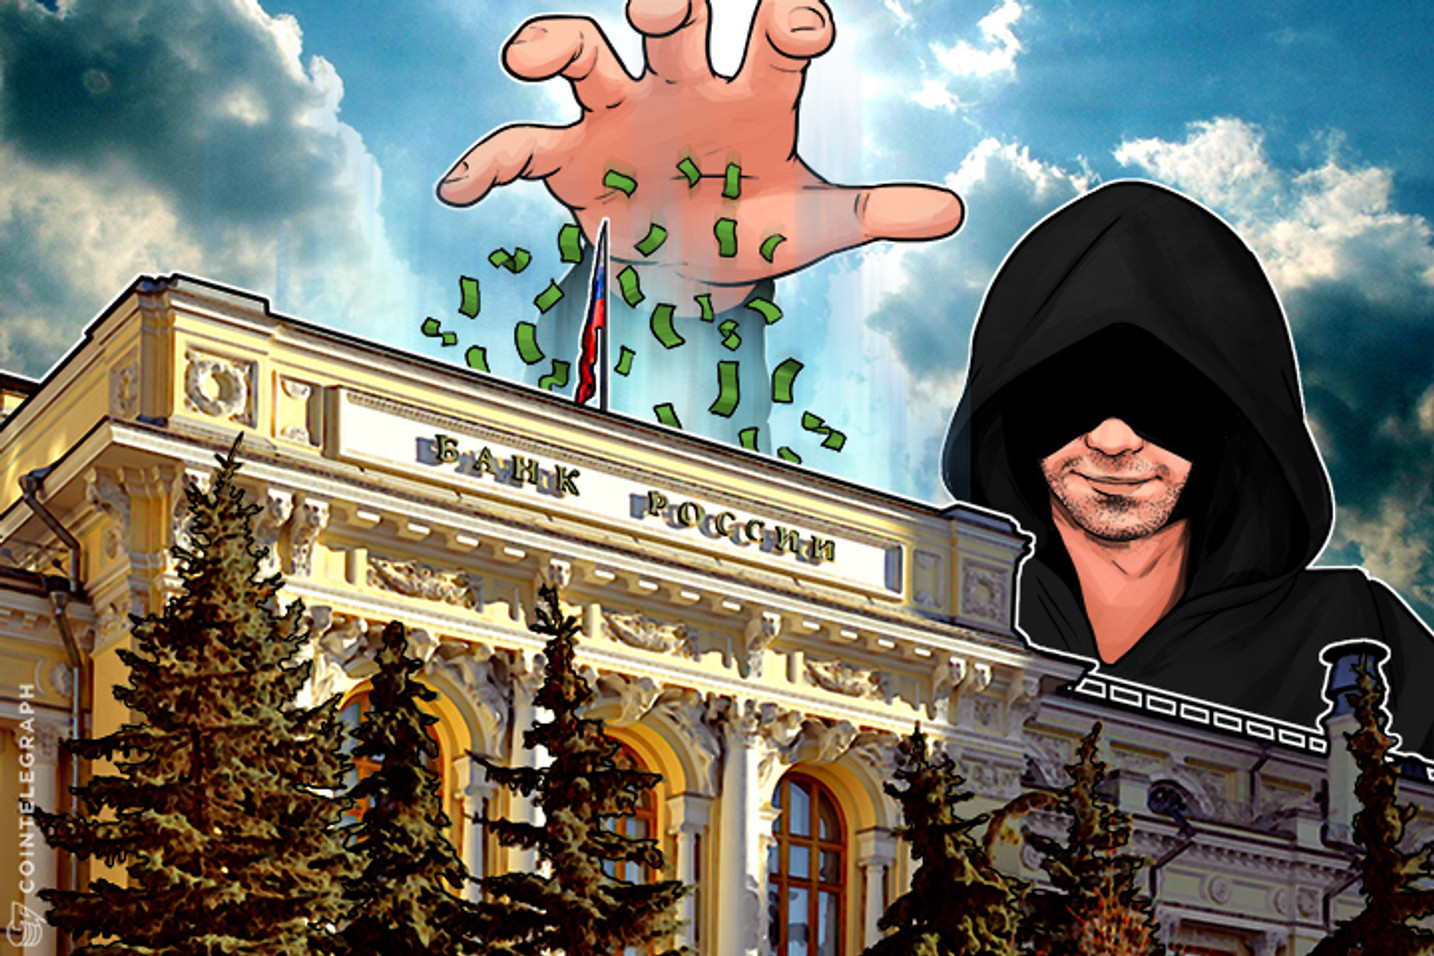 Hackers Steal $32 Mln From Russian Central Bank, Trustless Bitcoin Offers More Security